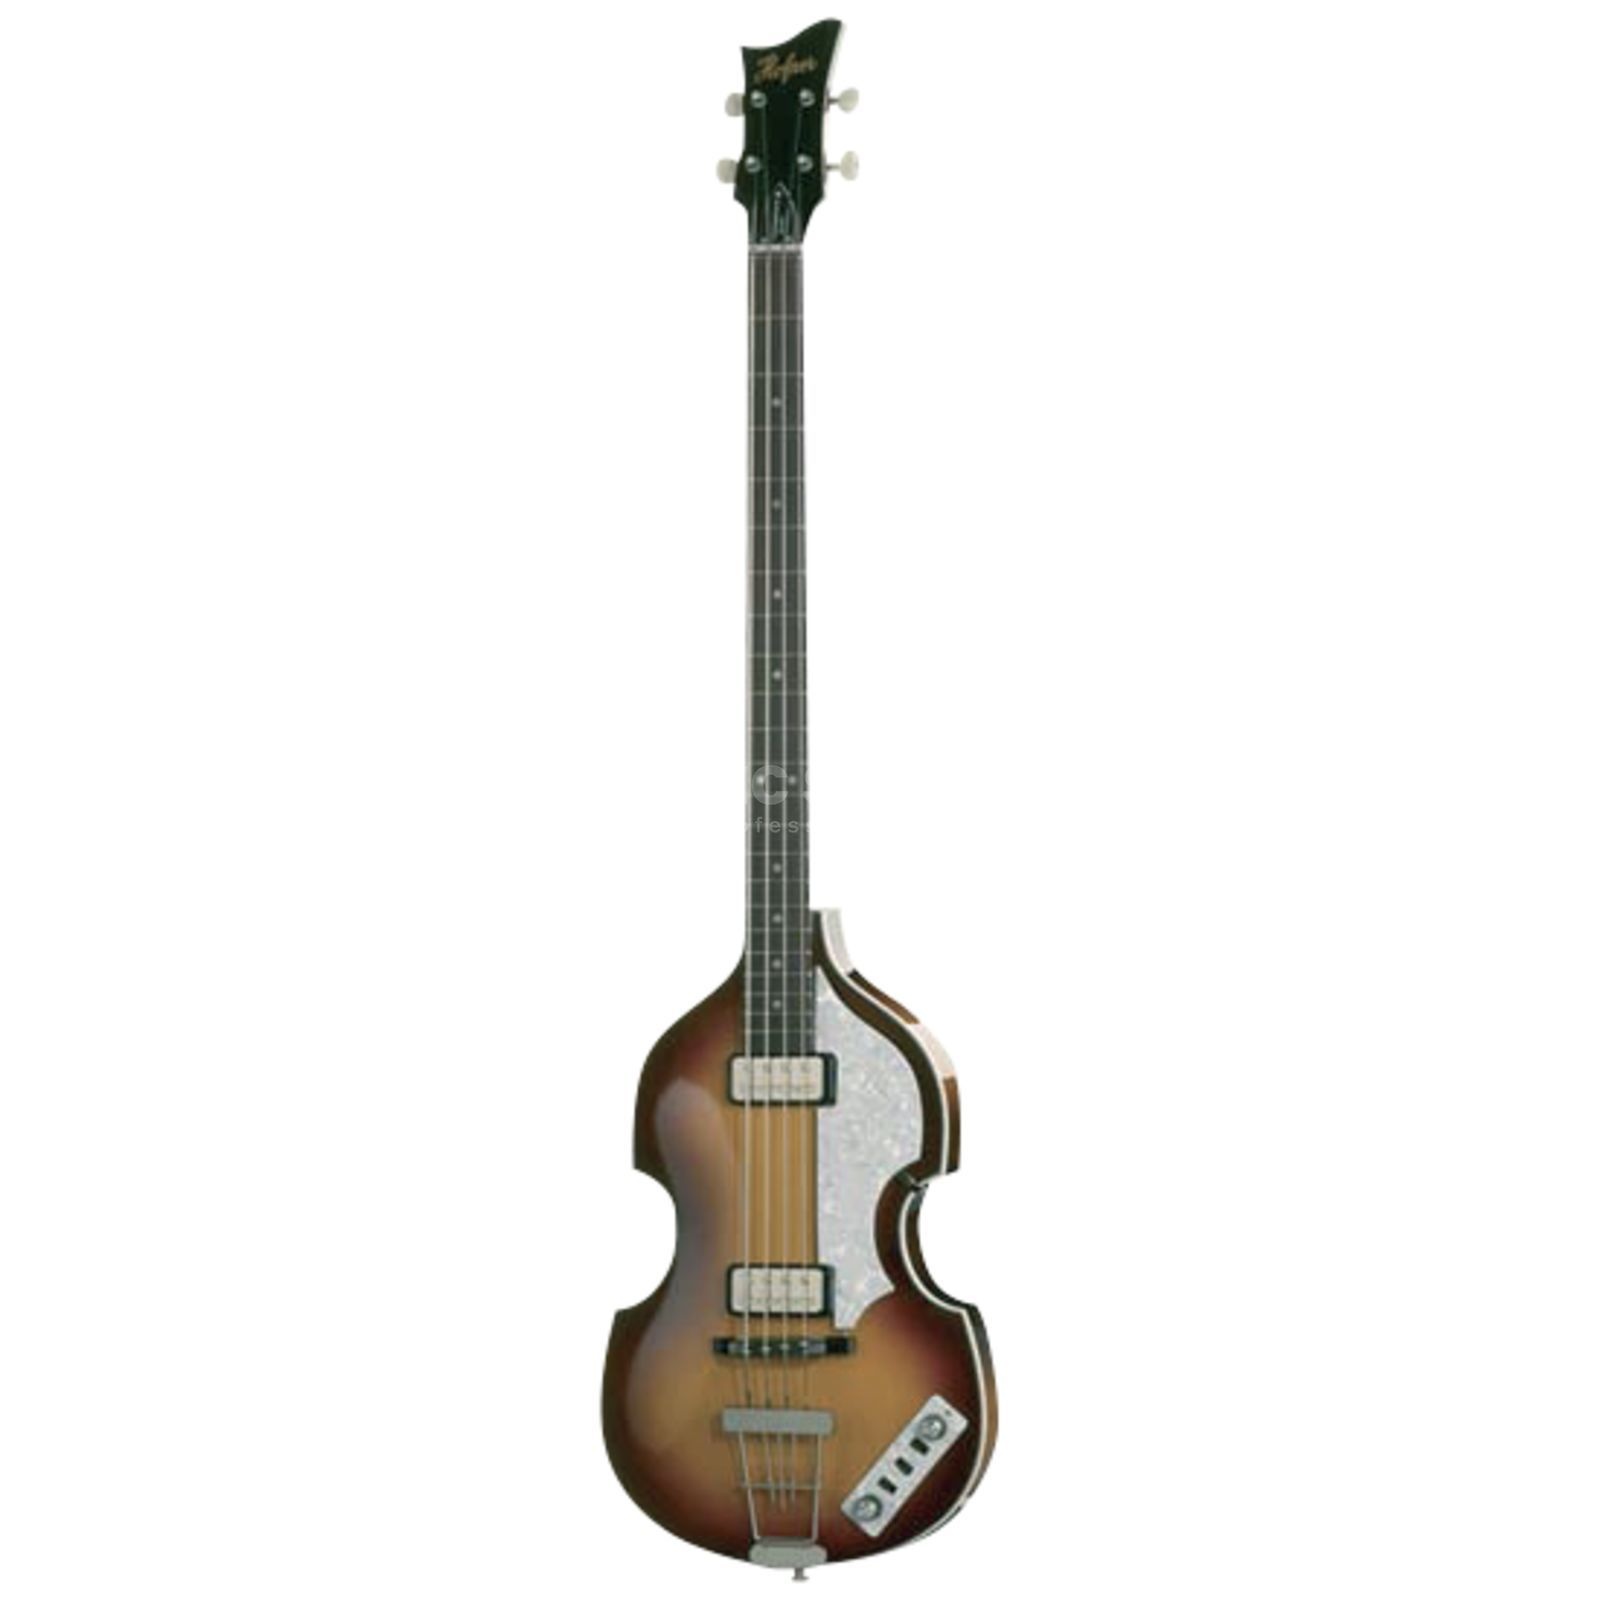 Höfner Violin Bass Sunburst Contemporary Series Immagine prodotto